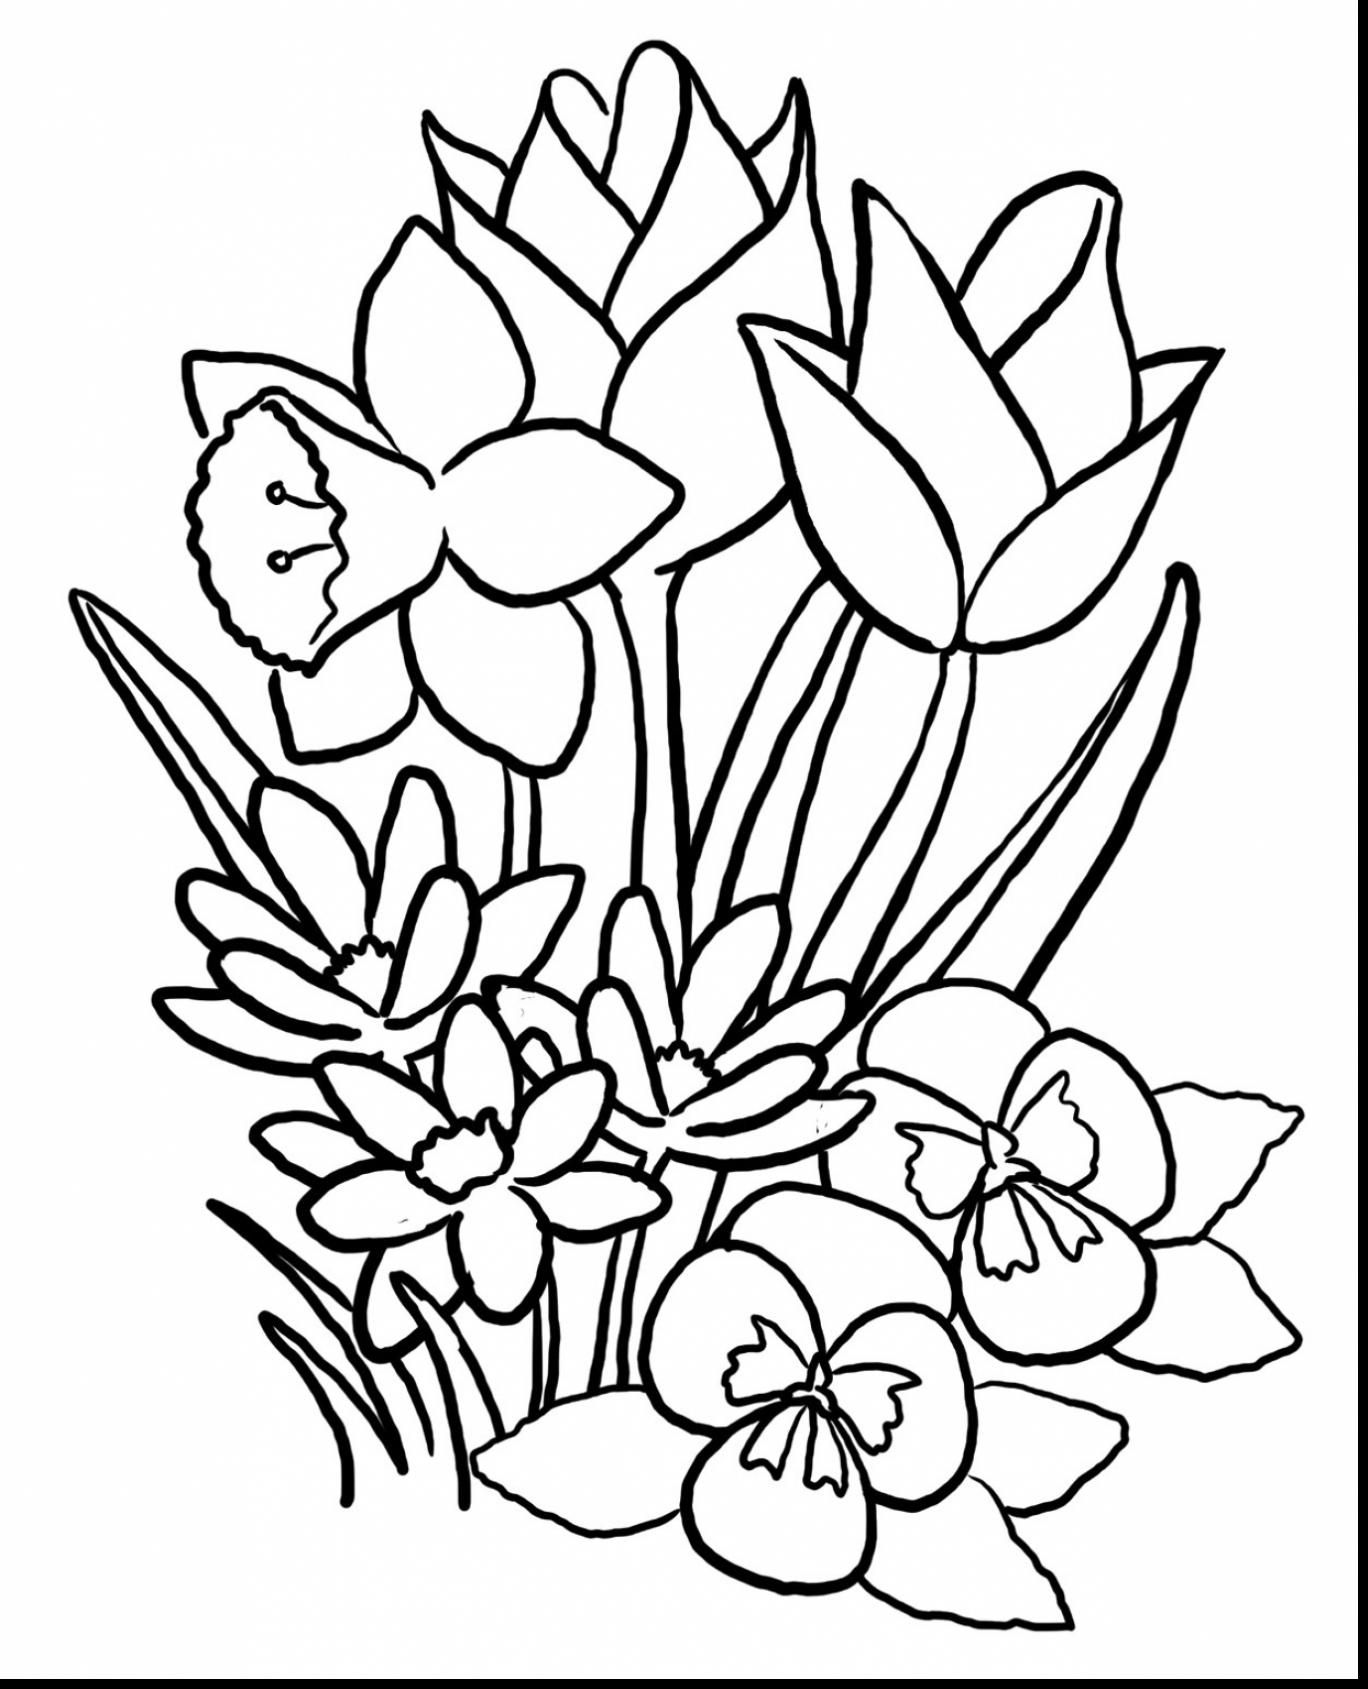 great spring flower coloring pages with spring coloring pages - Spring Flowers Coloring Pages